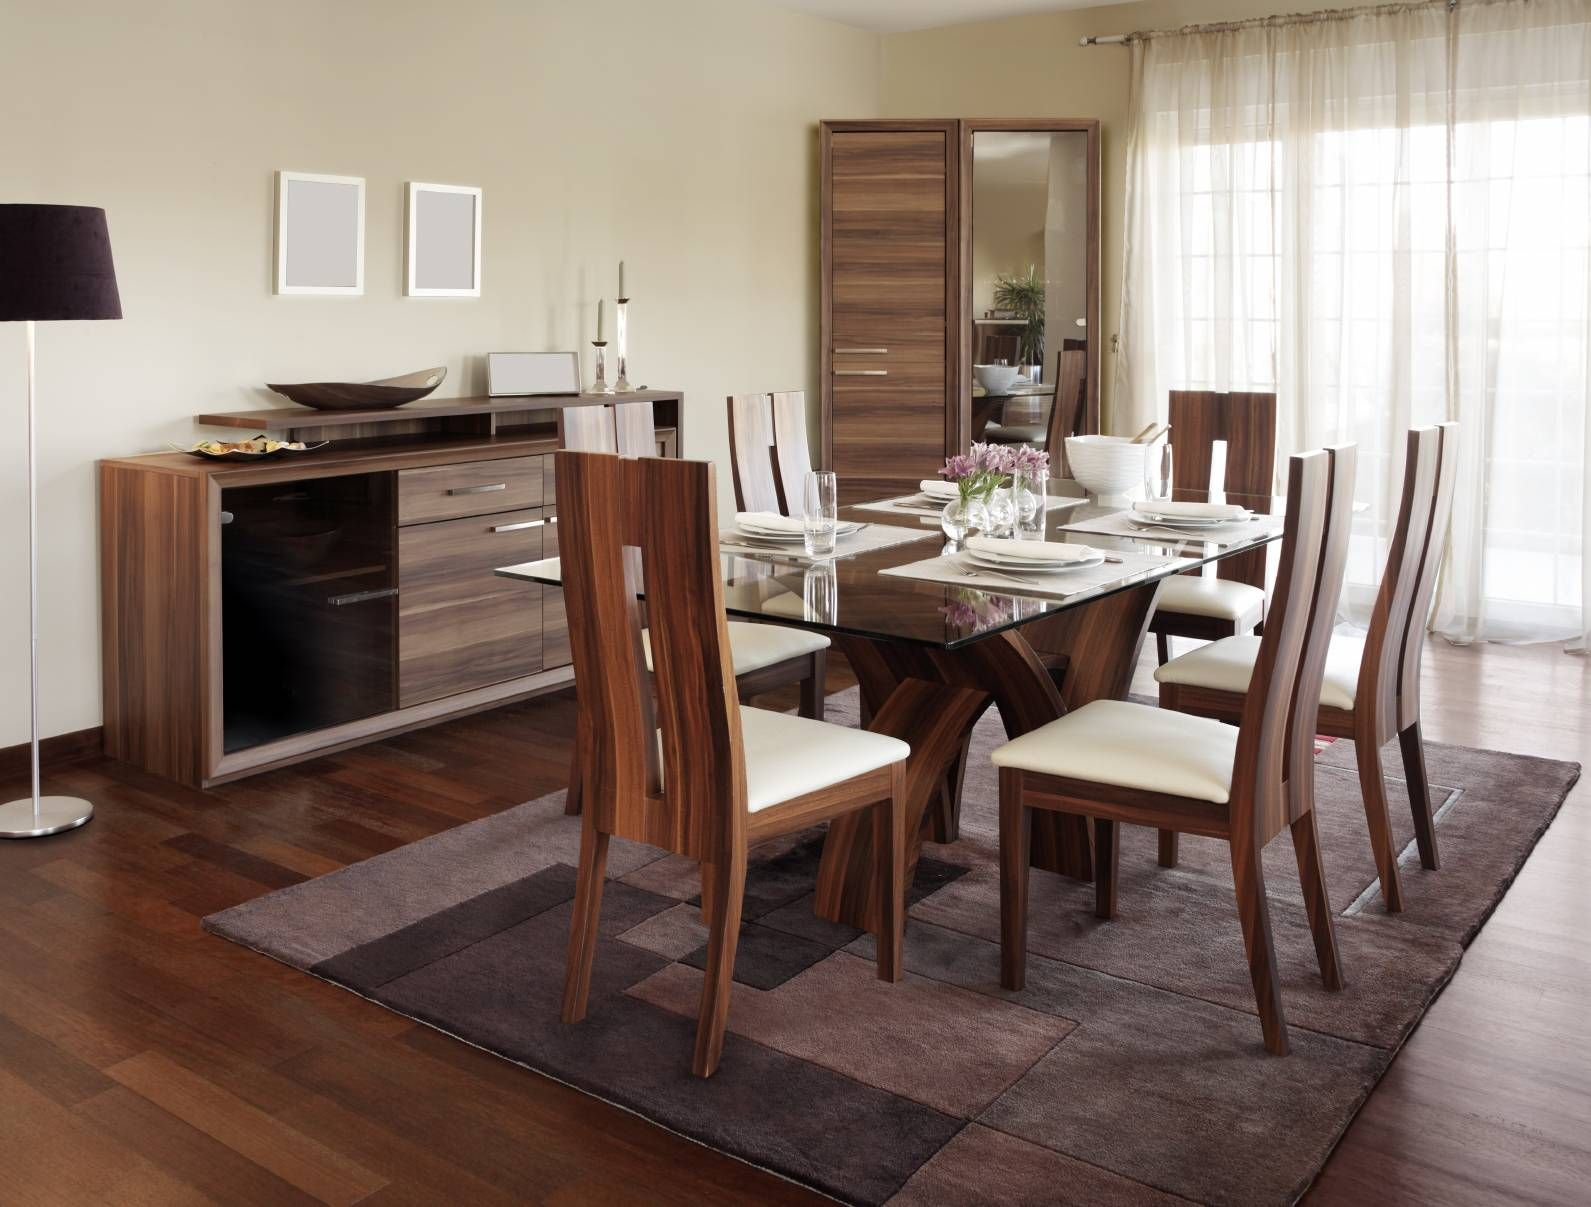 Inspirant Chaises Pour Salle A Manger Furniture Dining Room Furniture Dining Table Chairs